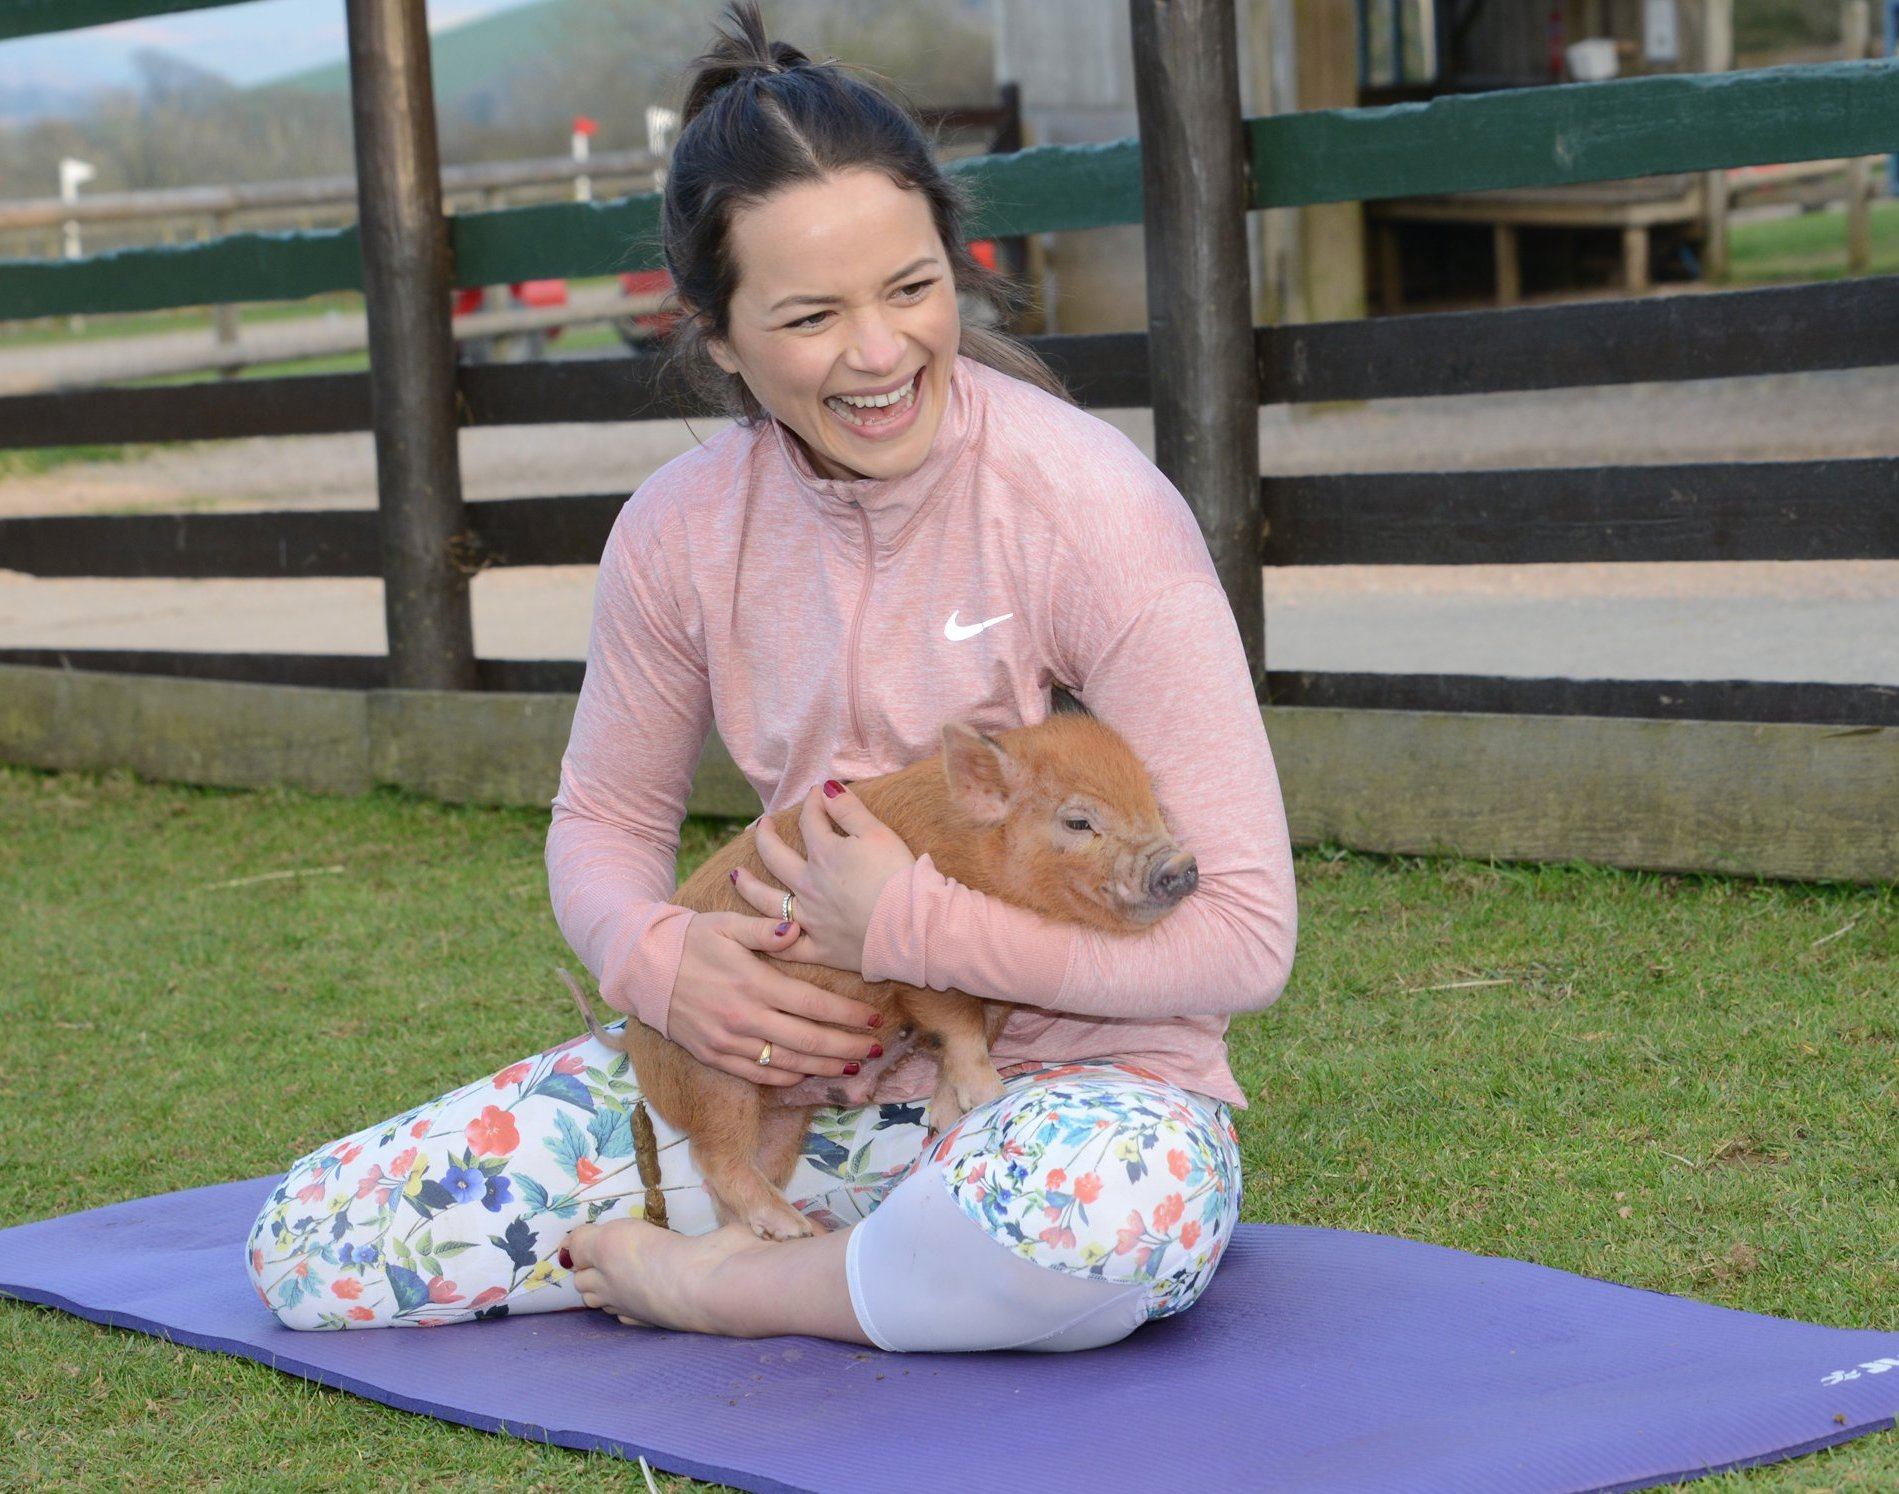 Harry cuddles a pig while sitting on a pilates mat